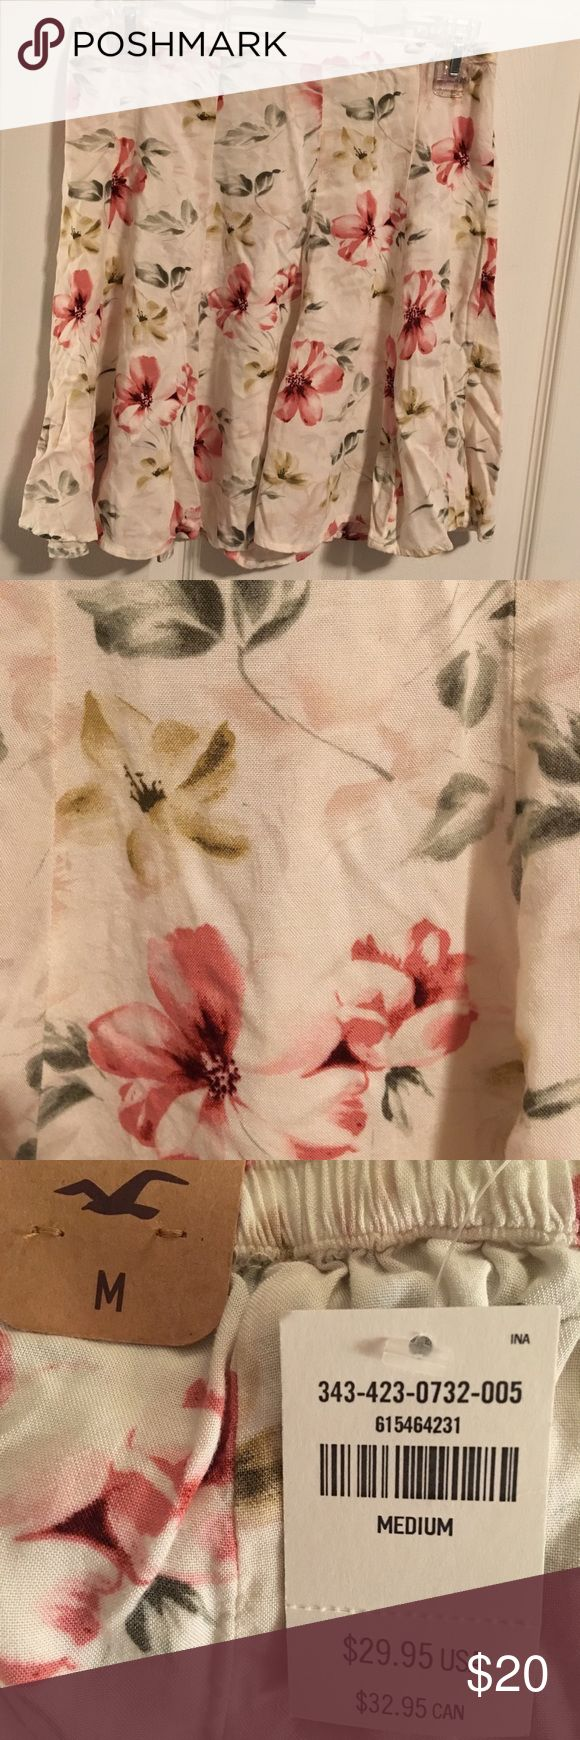 Floral Hollister Skirt NWT A white skirt with a pink and green floral print. Never worn and has tags. Hollister Skirts